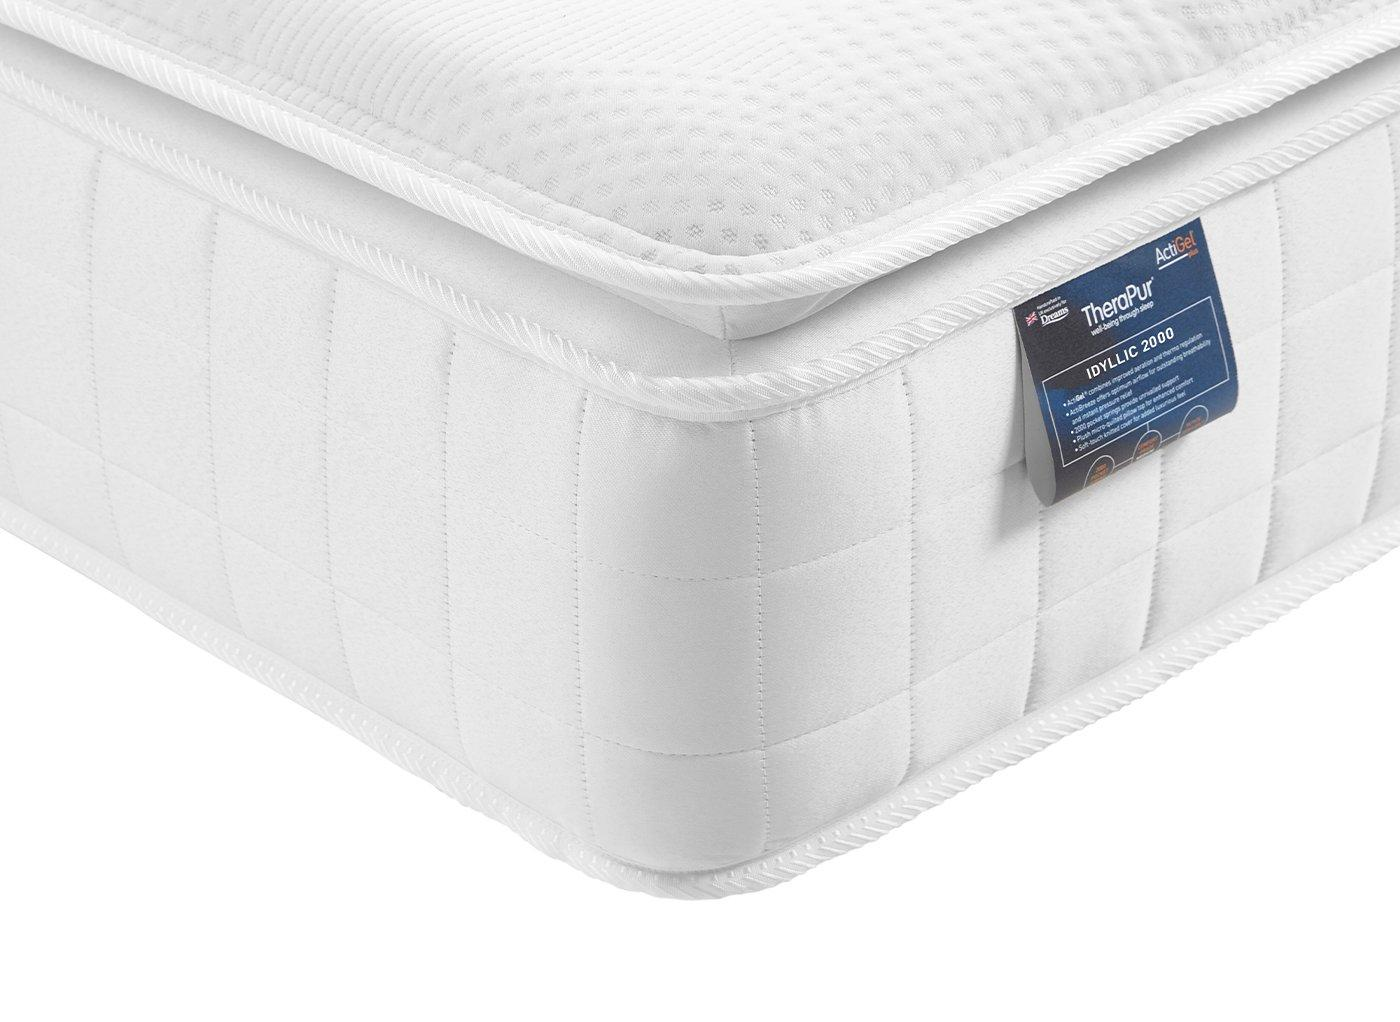 Therapur Acti Gel Plus Idyllic 2000 Mattress